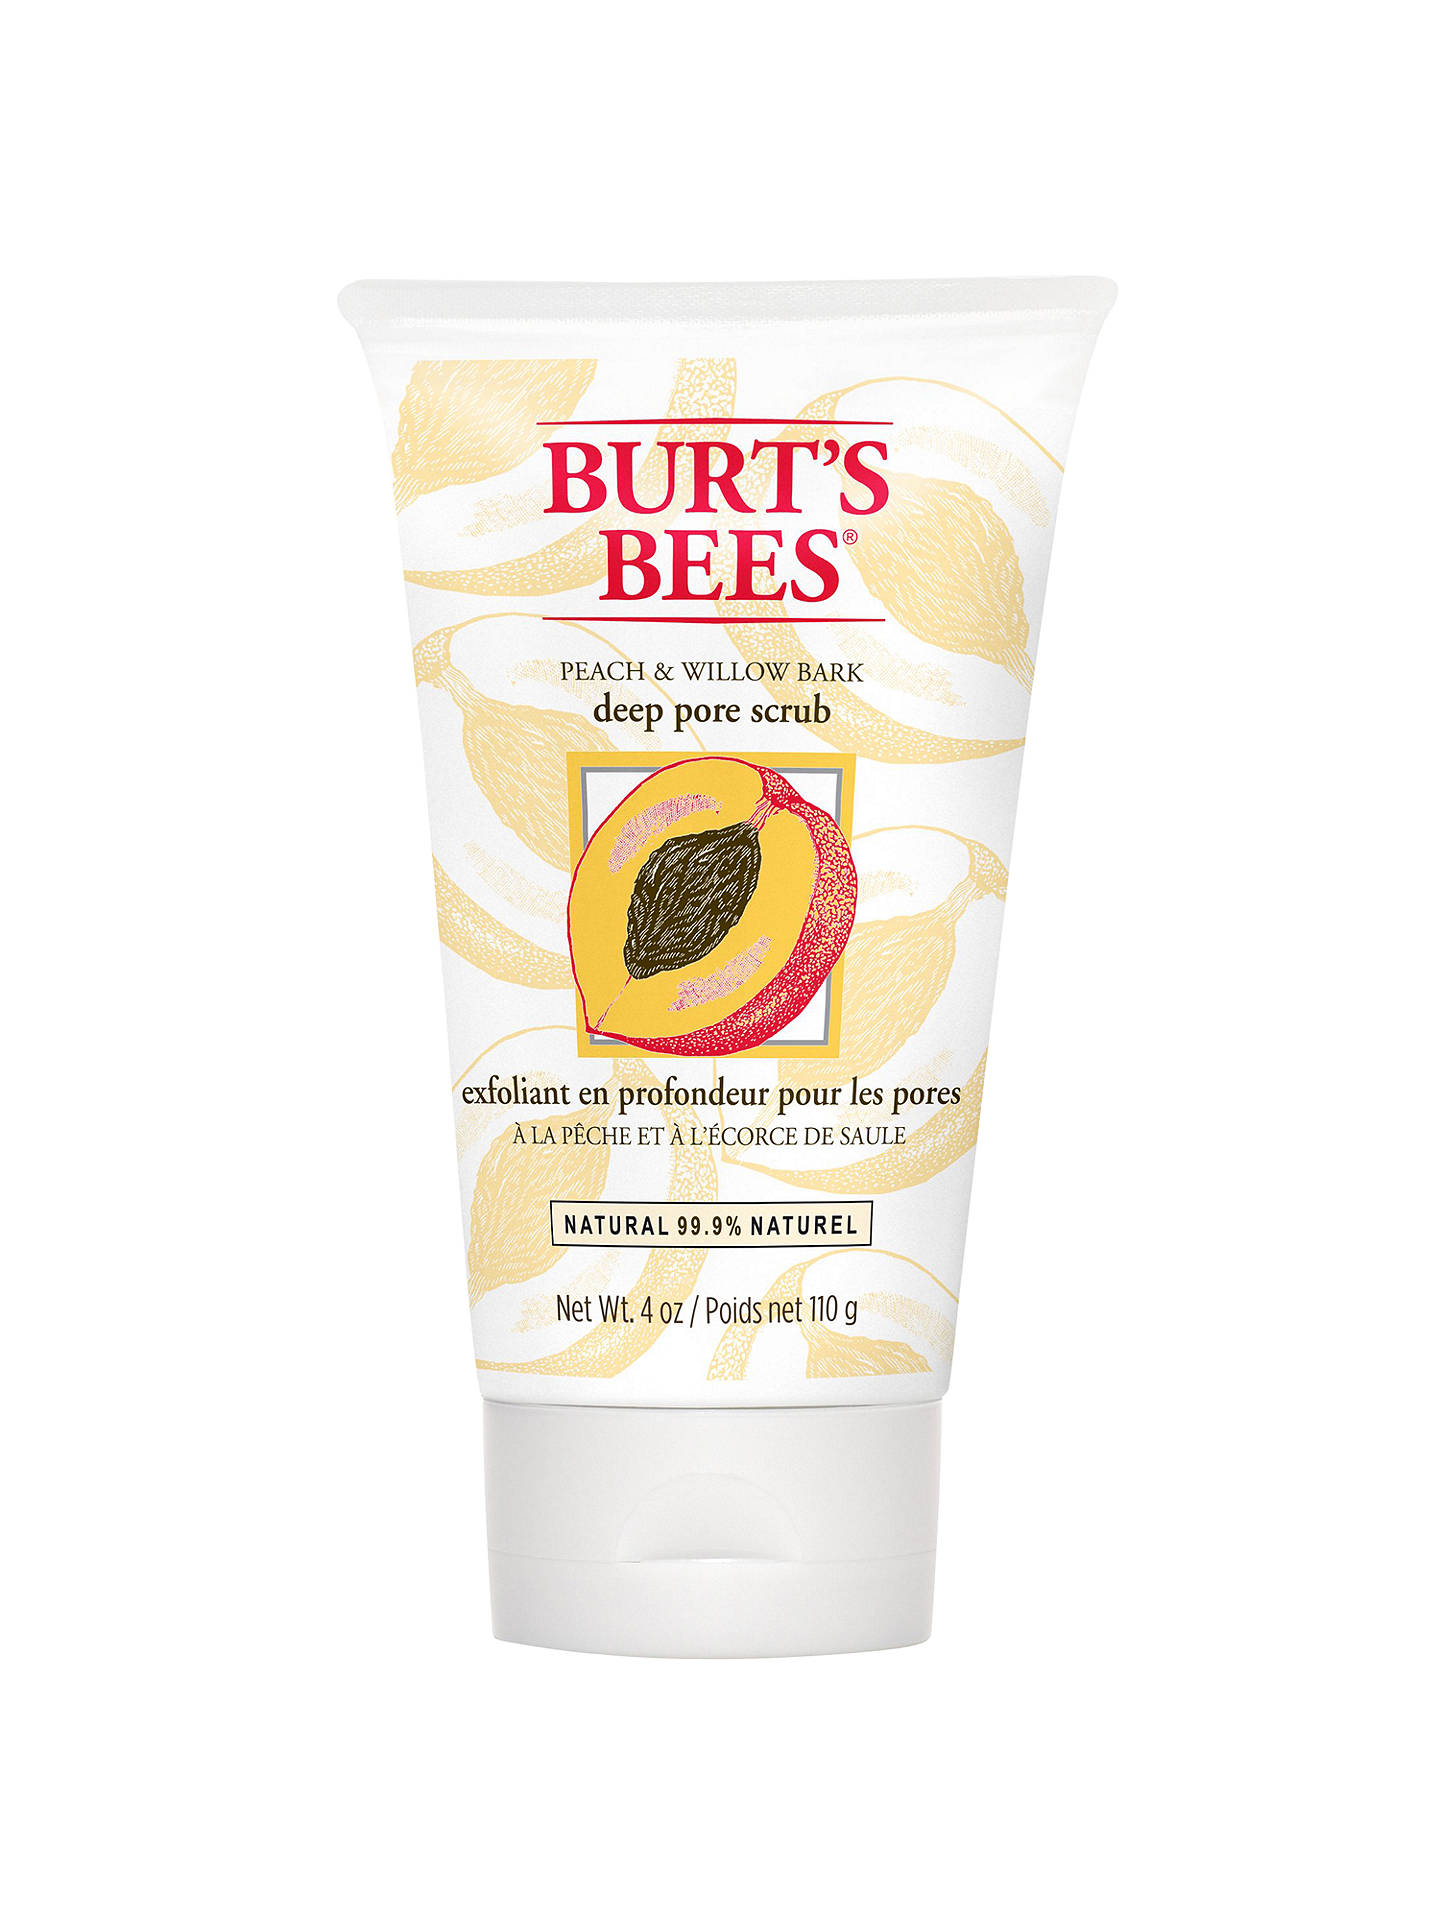 BuyBurt's Bees Peach and Willow Bark Deep Pore Scrub, 110g Online at johnlewis.com